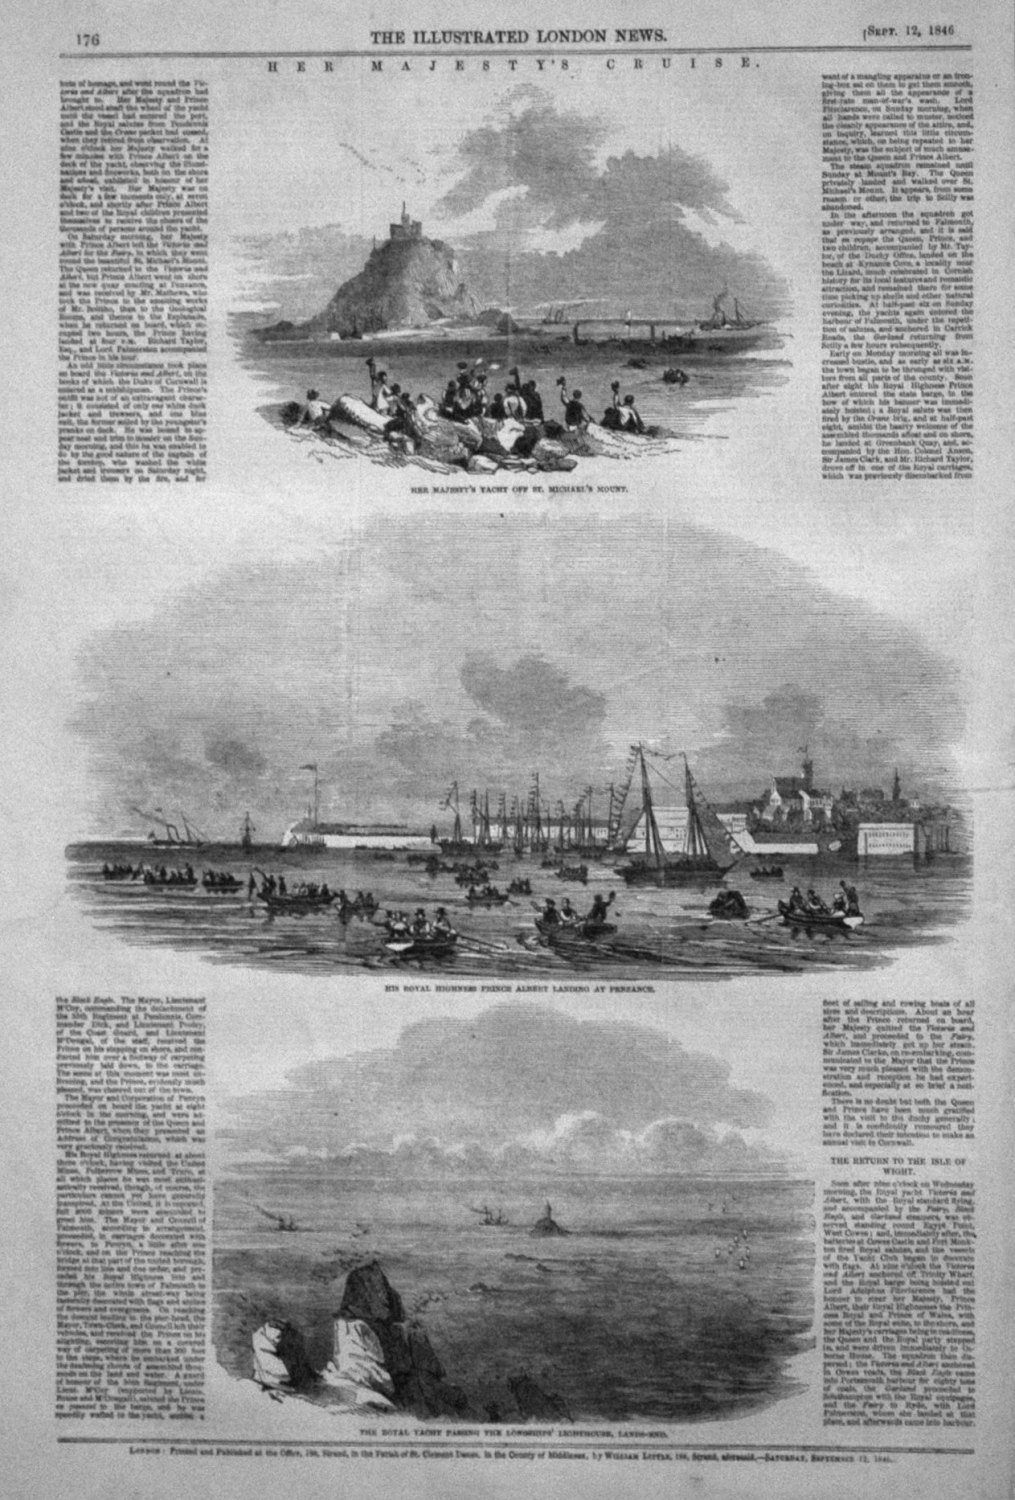 Her Majesty's Cruise. 1846